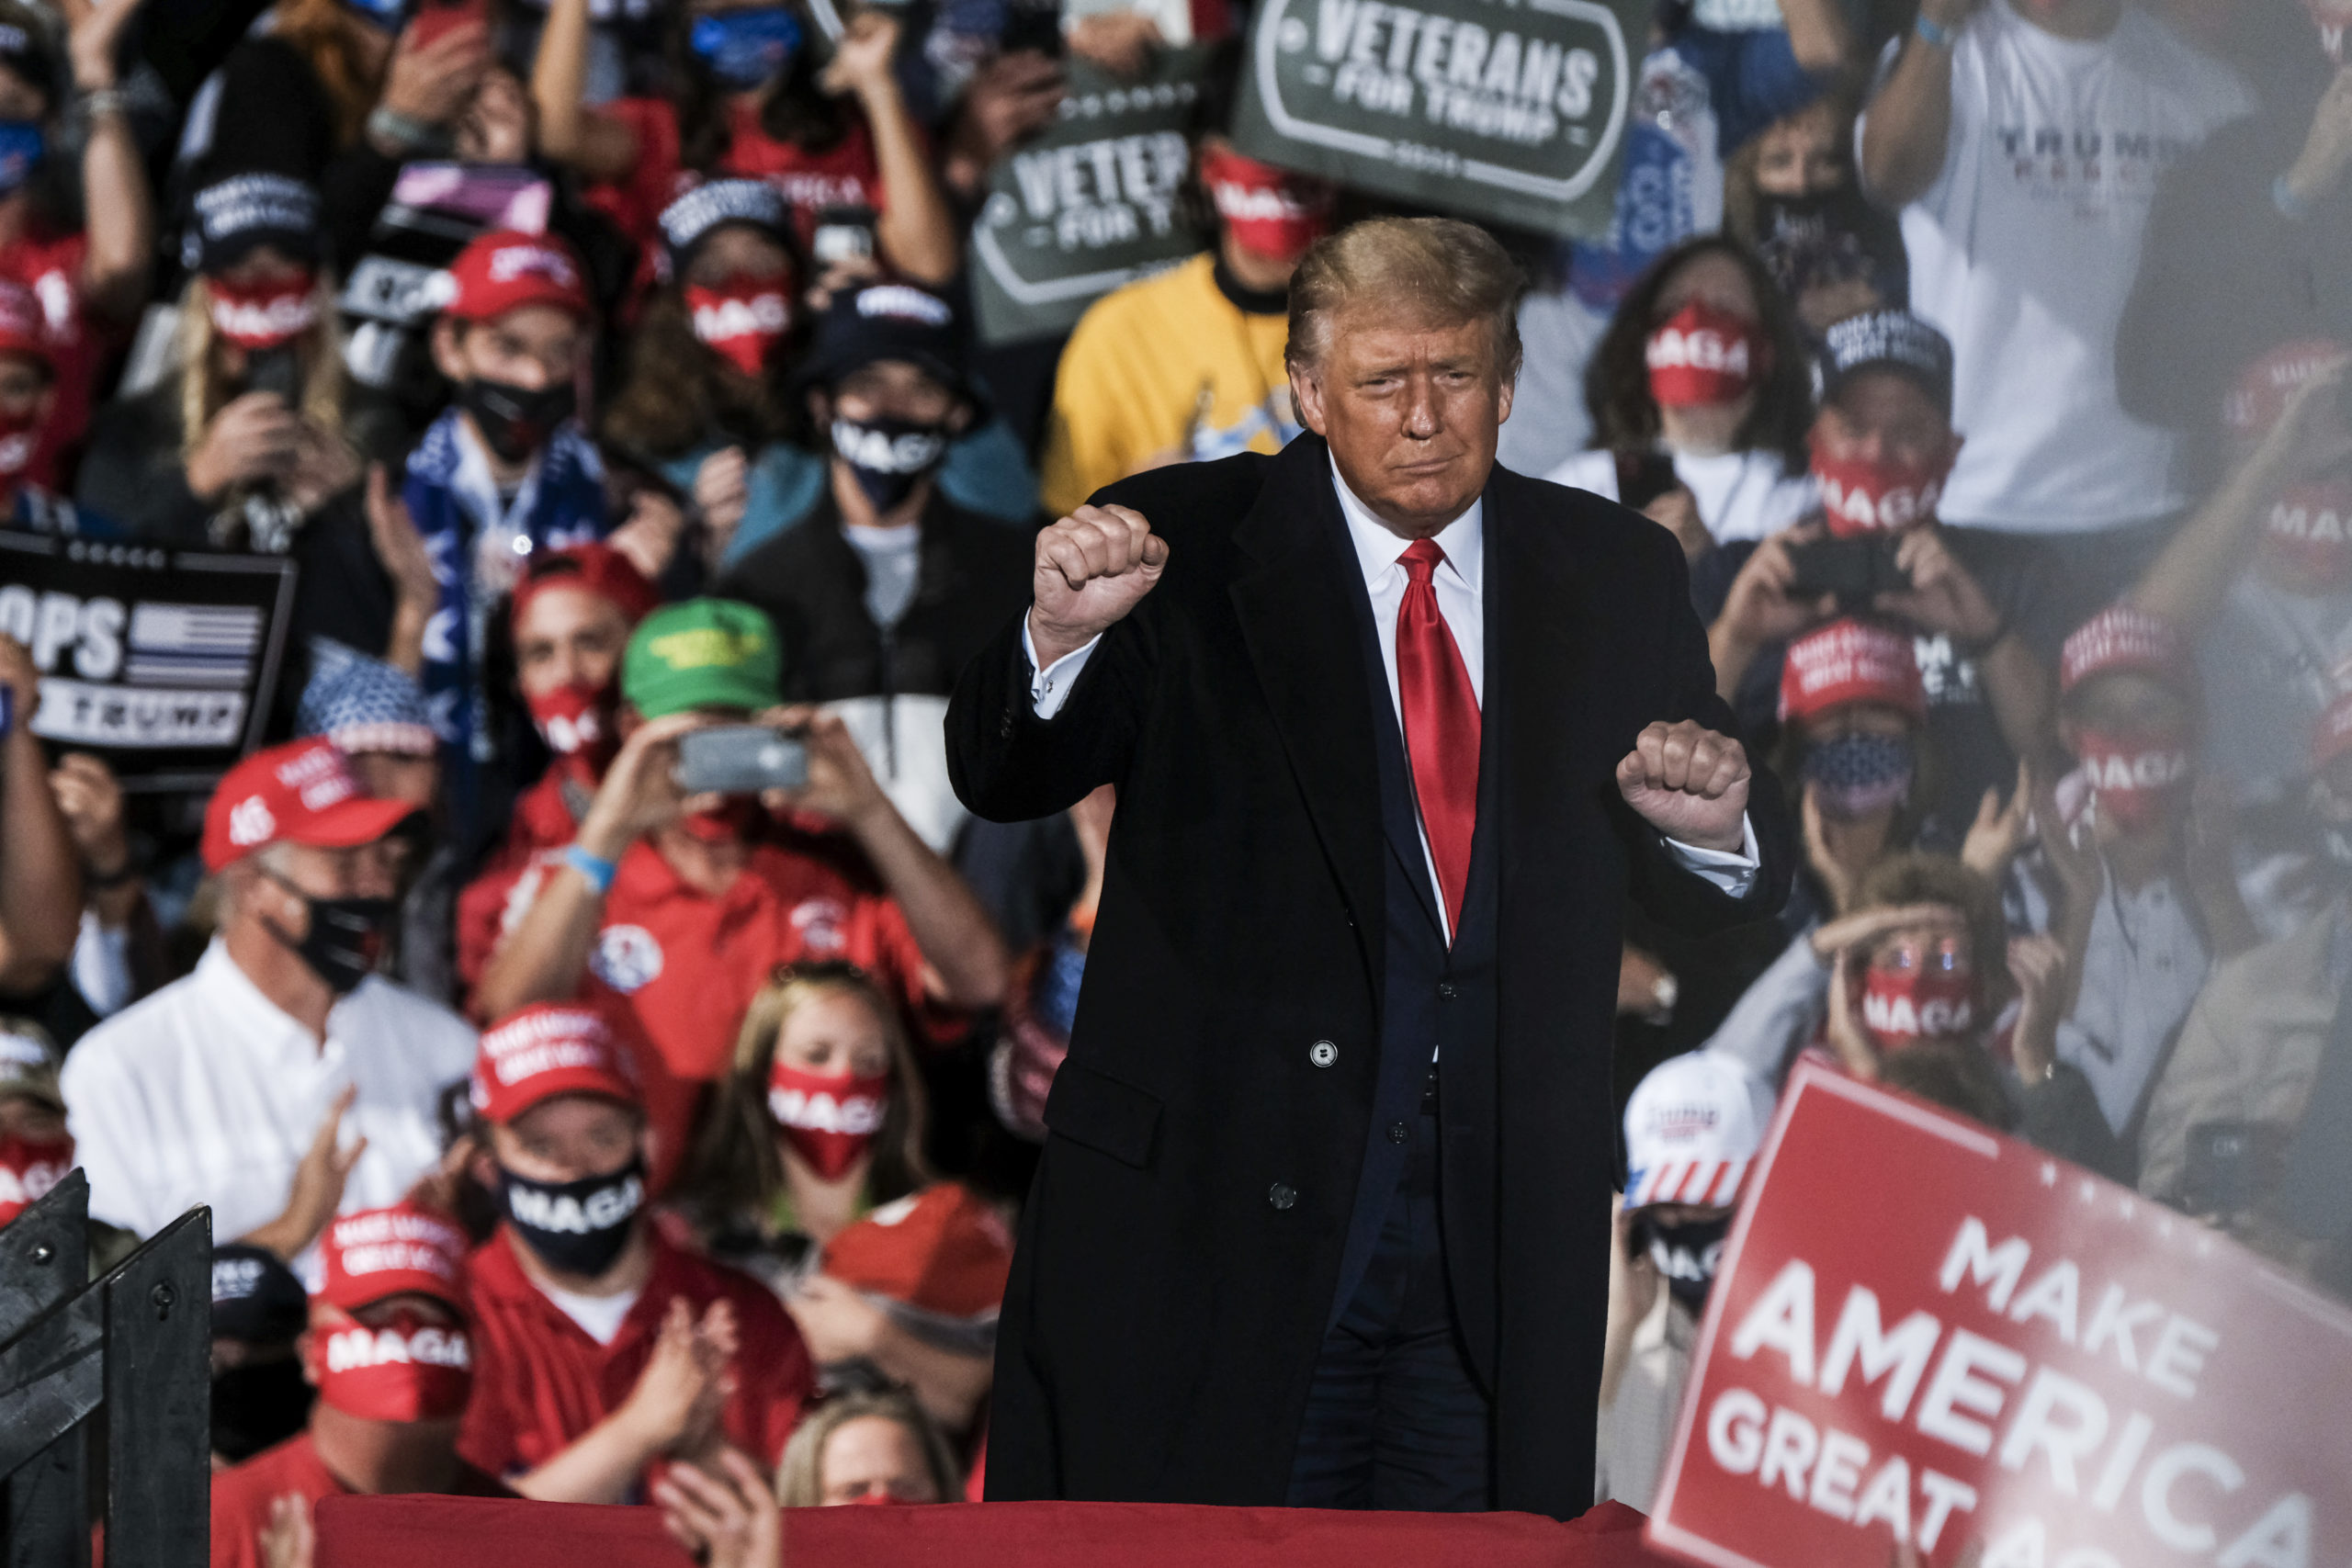 SWANTON, OH - SEPTEMBER 21: President Donald Trump charges up the crowd while speaking of the need to win the upcoming election during a campaign rally at the Toledo Express Airport on September 21, 2020 in Swanton, Ohio. Through the rally the President both expressed the importance of filling the late Supreme Court Justice Ruth Bader Ginsberg's seat as well as his perceived consequences to America if his opponent Joe Biden were to win in the upcoming election. (Photo by Matthew Hatcher/Getty Images)